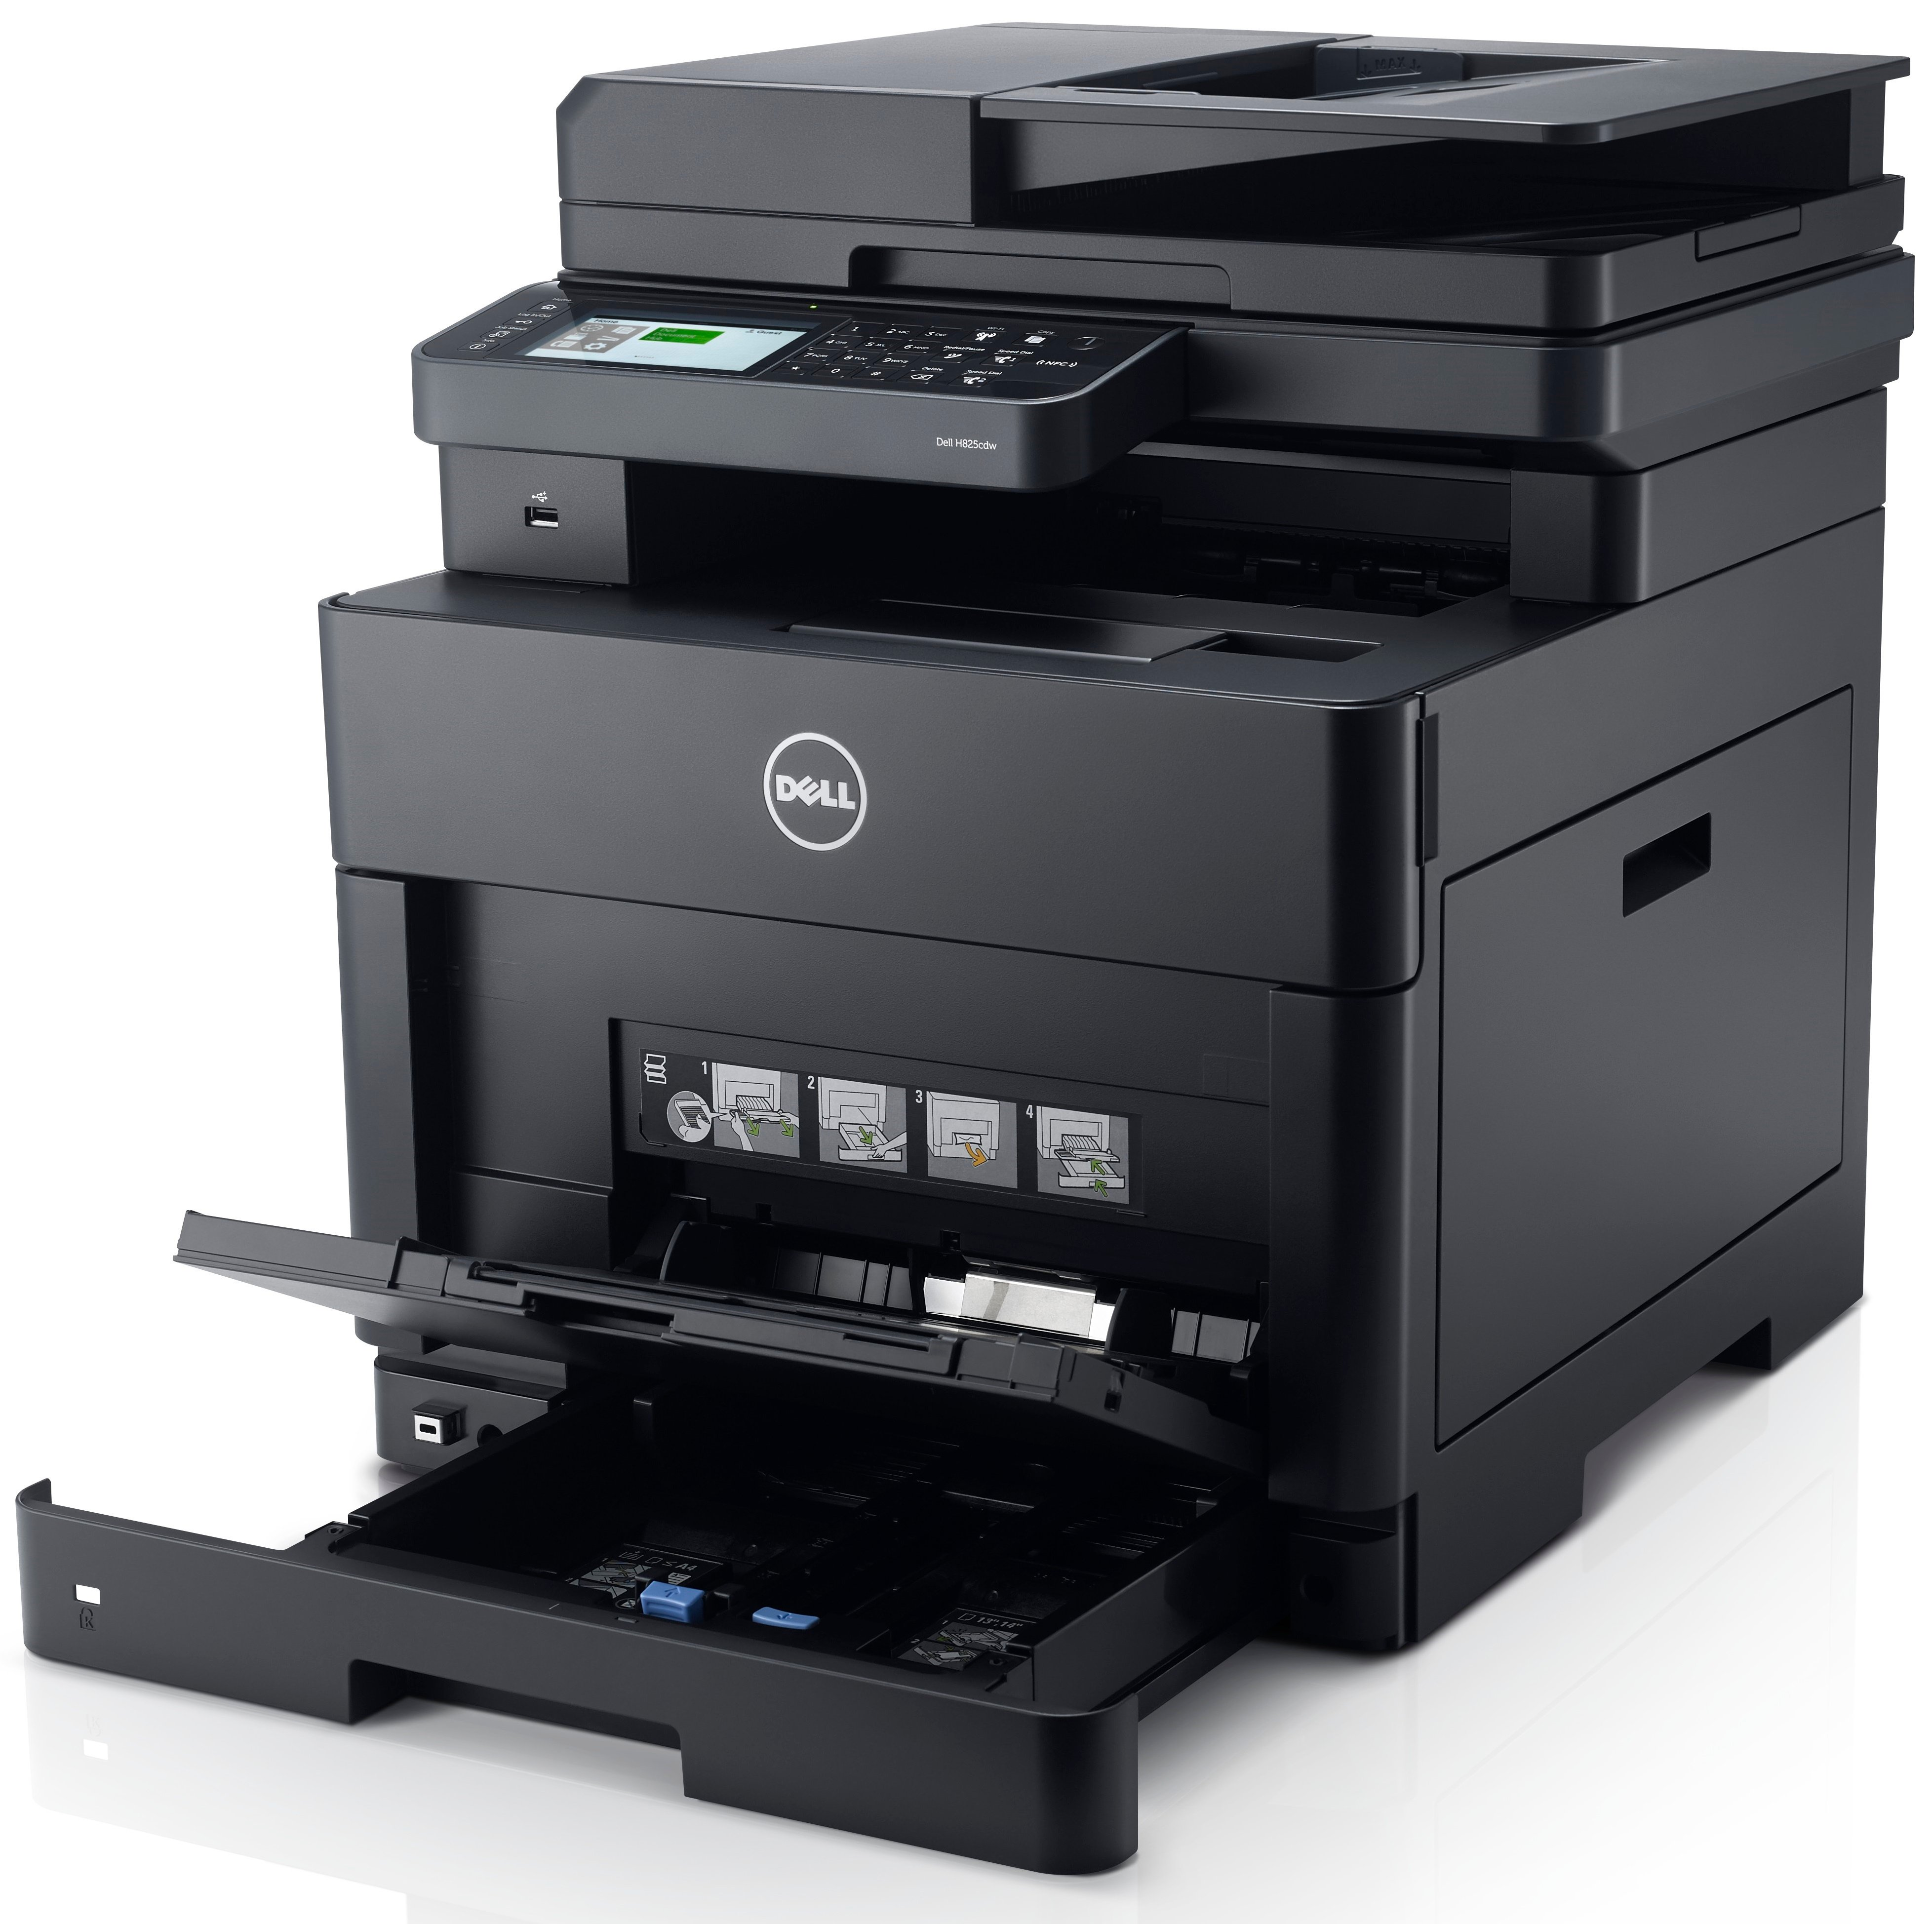 Dell H825cdw Review The Best Colour Laser Mfp For Small